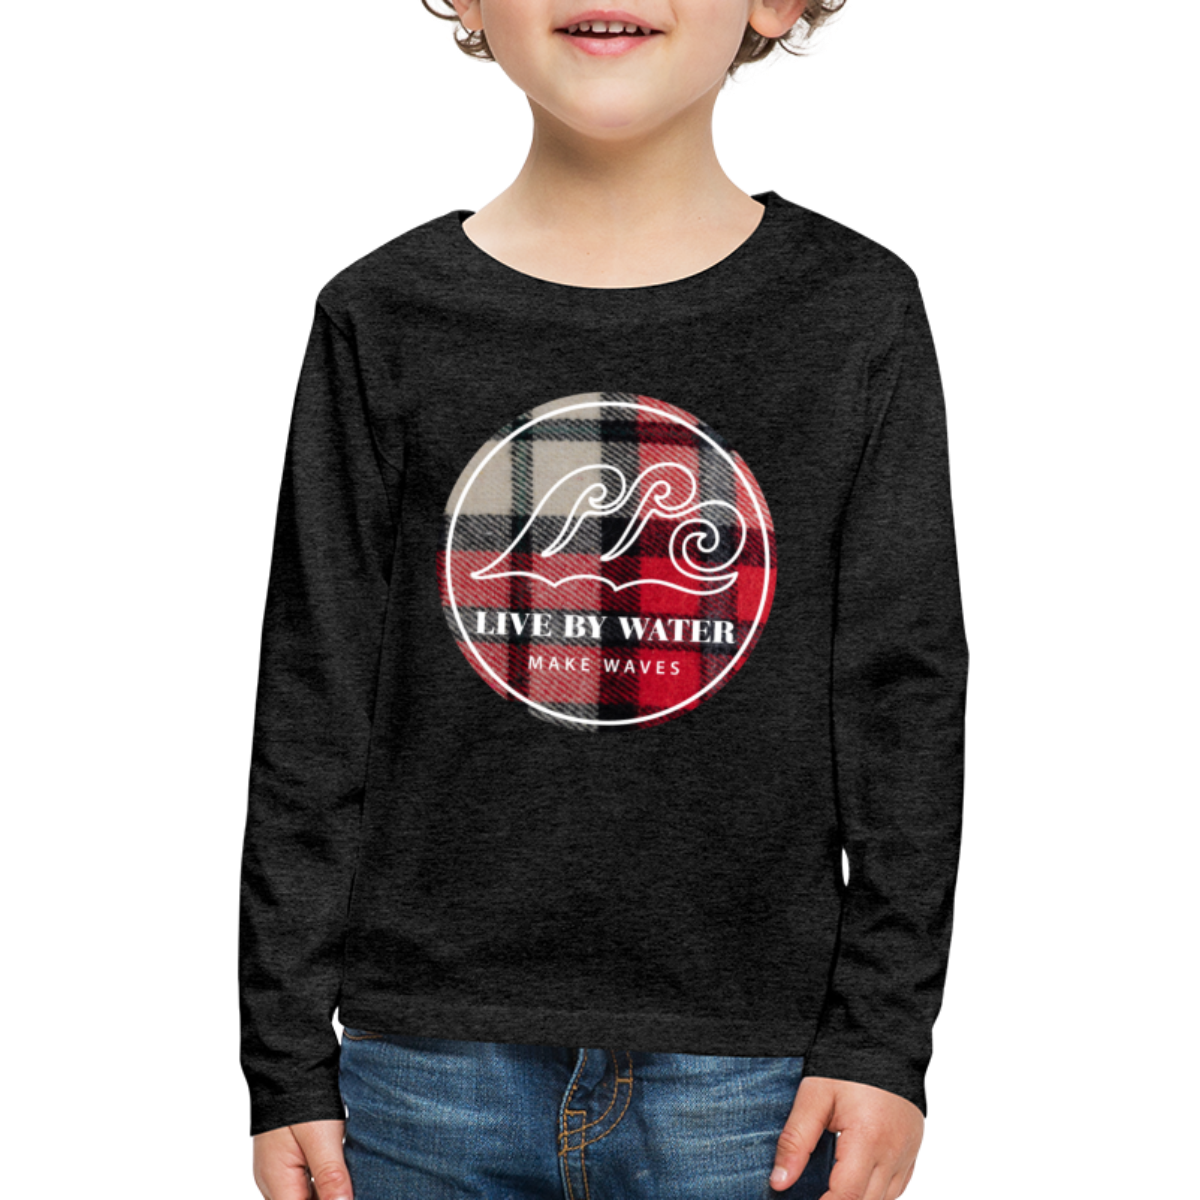 Red Flannel-Kids Long Sleeve T